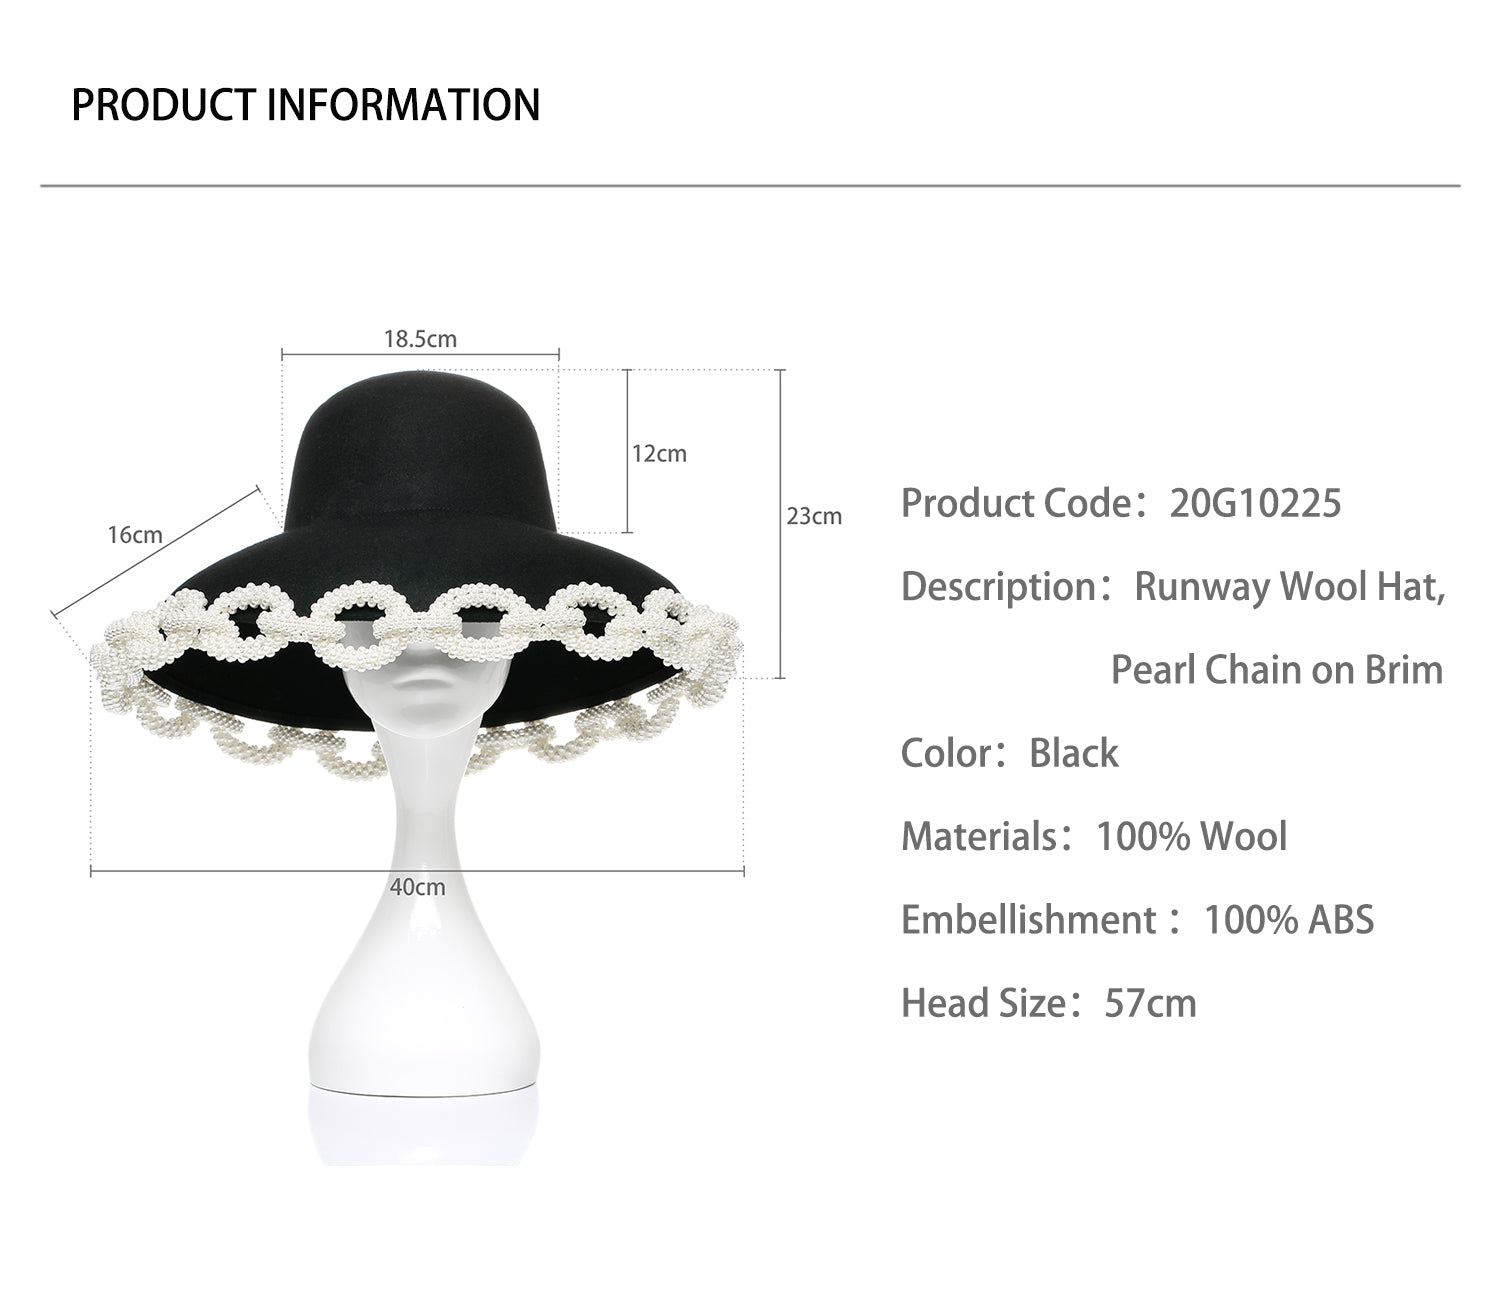 Runway Wool Hat, Pearl Chain on Brim